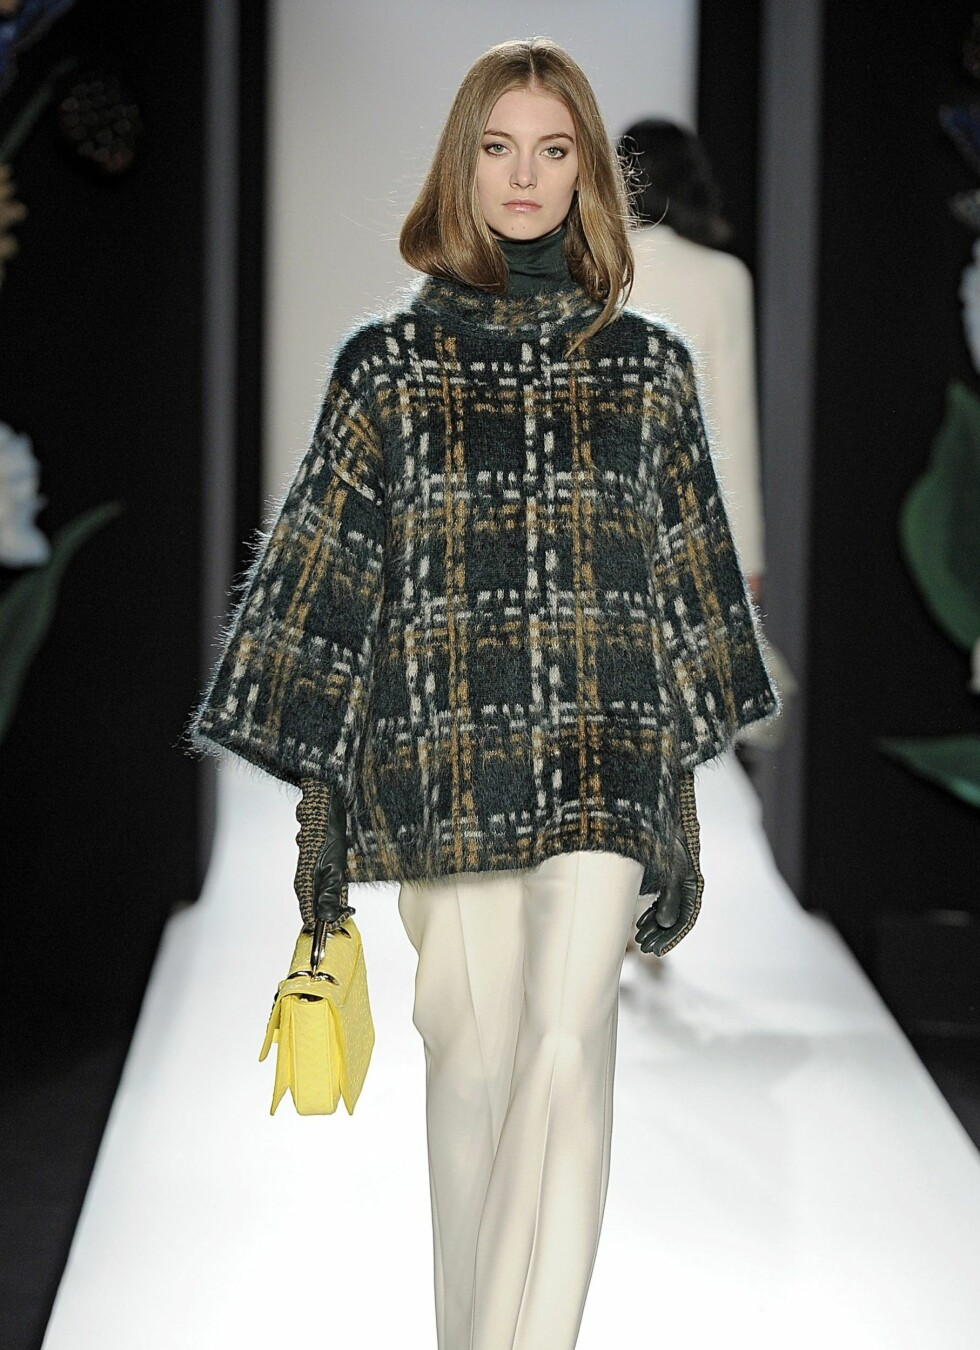 Mulberry Foto: All Over Press